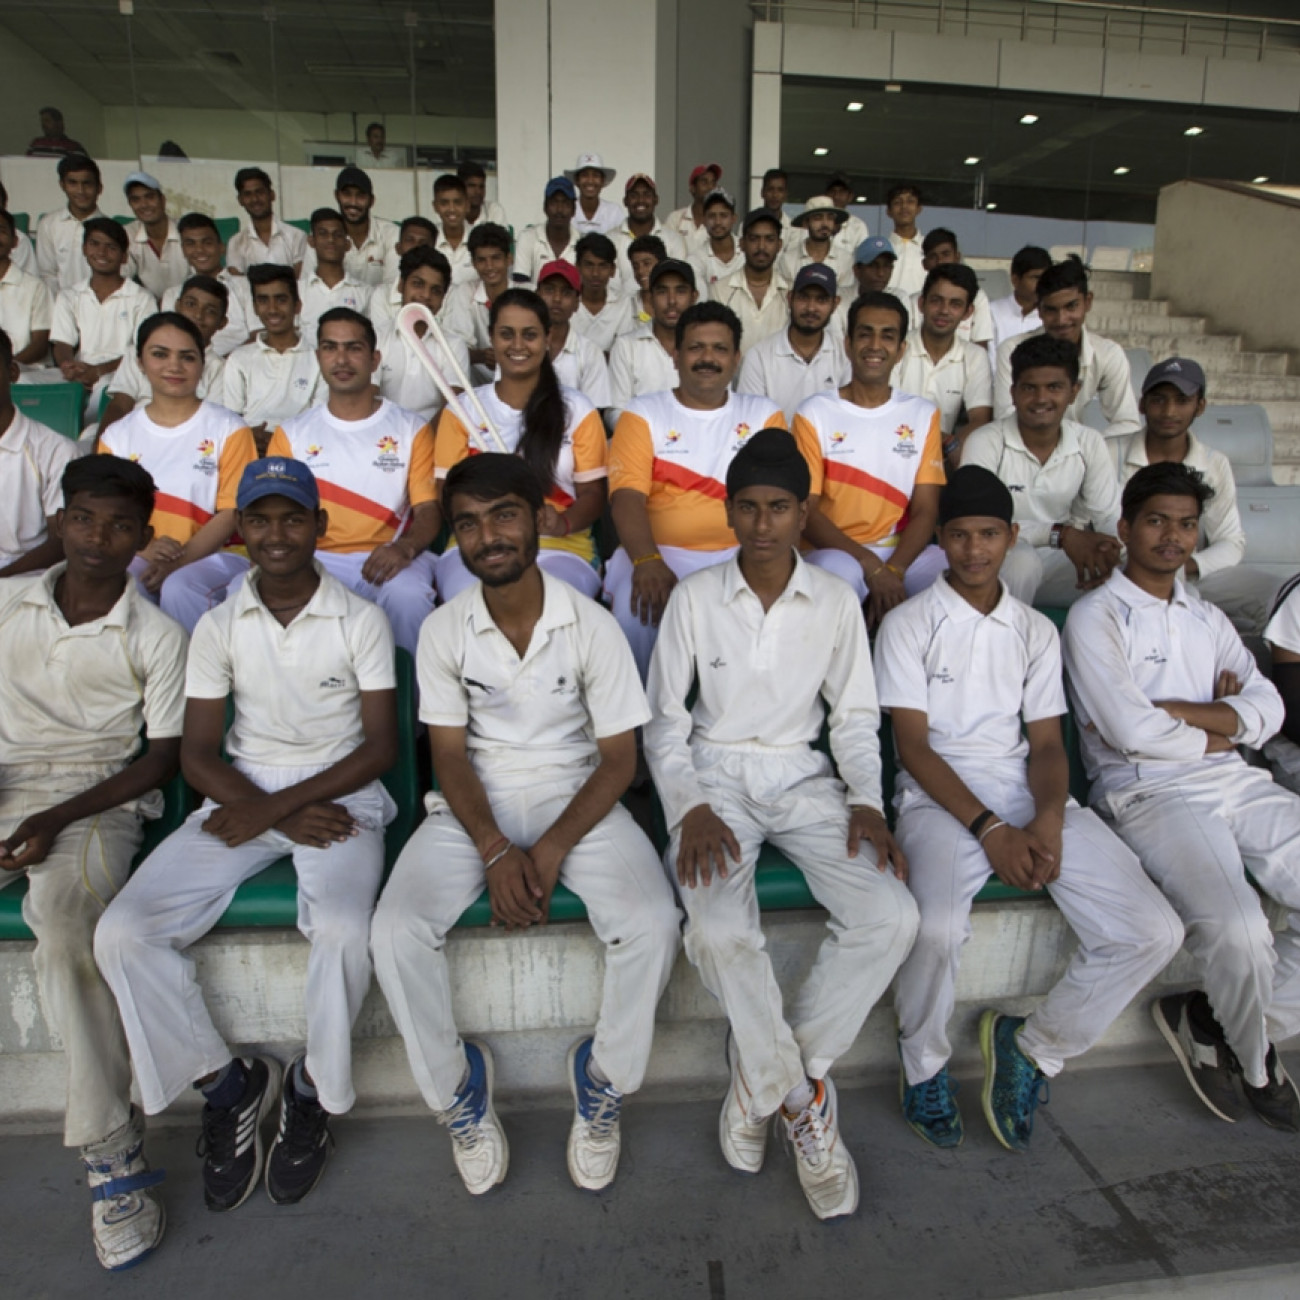 Batonbearers and young cricketers with the Baton at a ceremony before a section of the Relay from the National Stadium around the India Gate